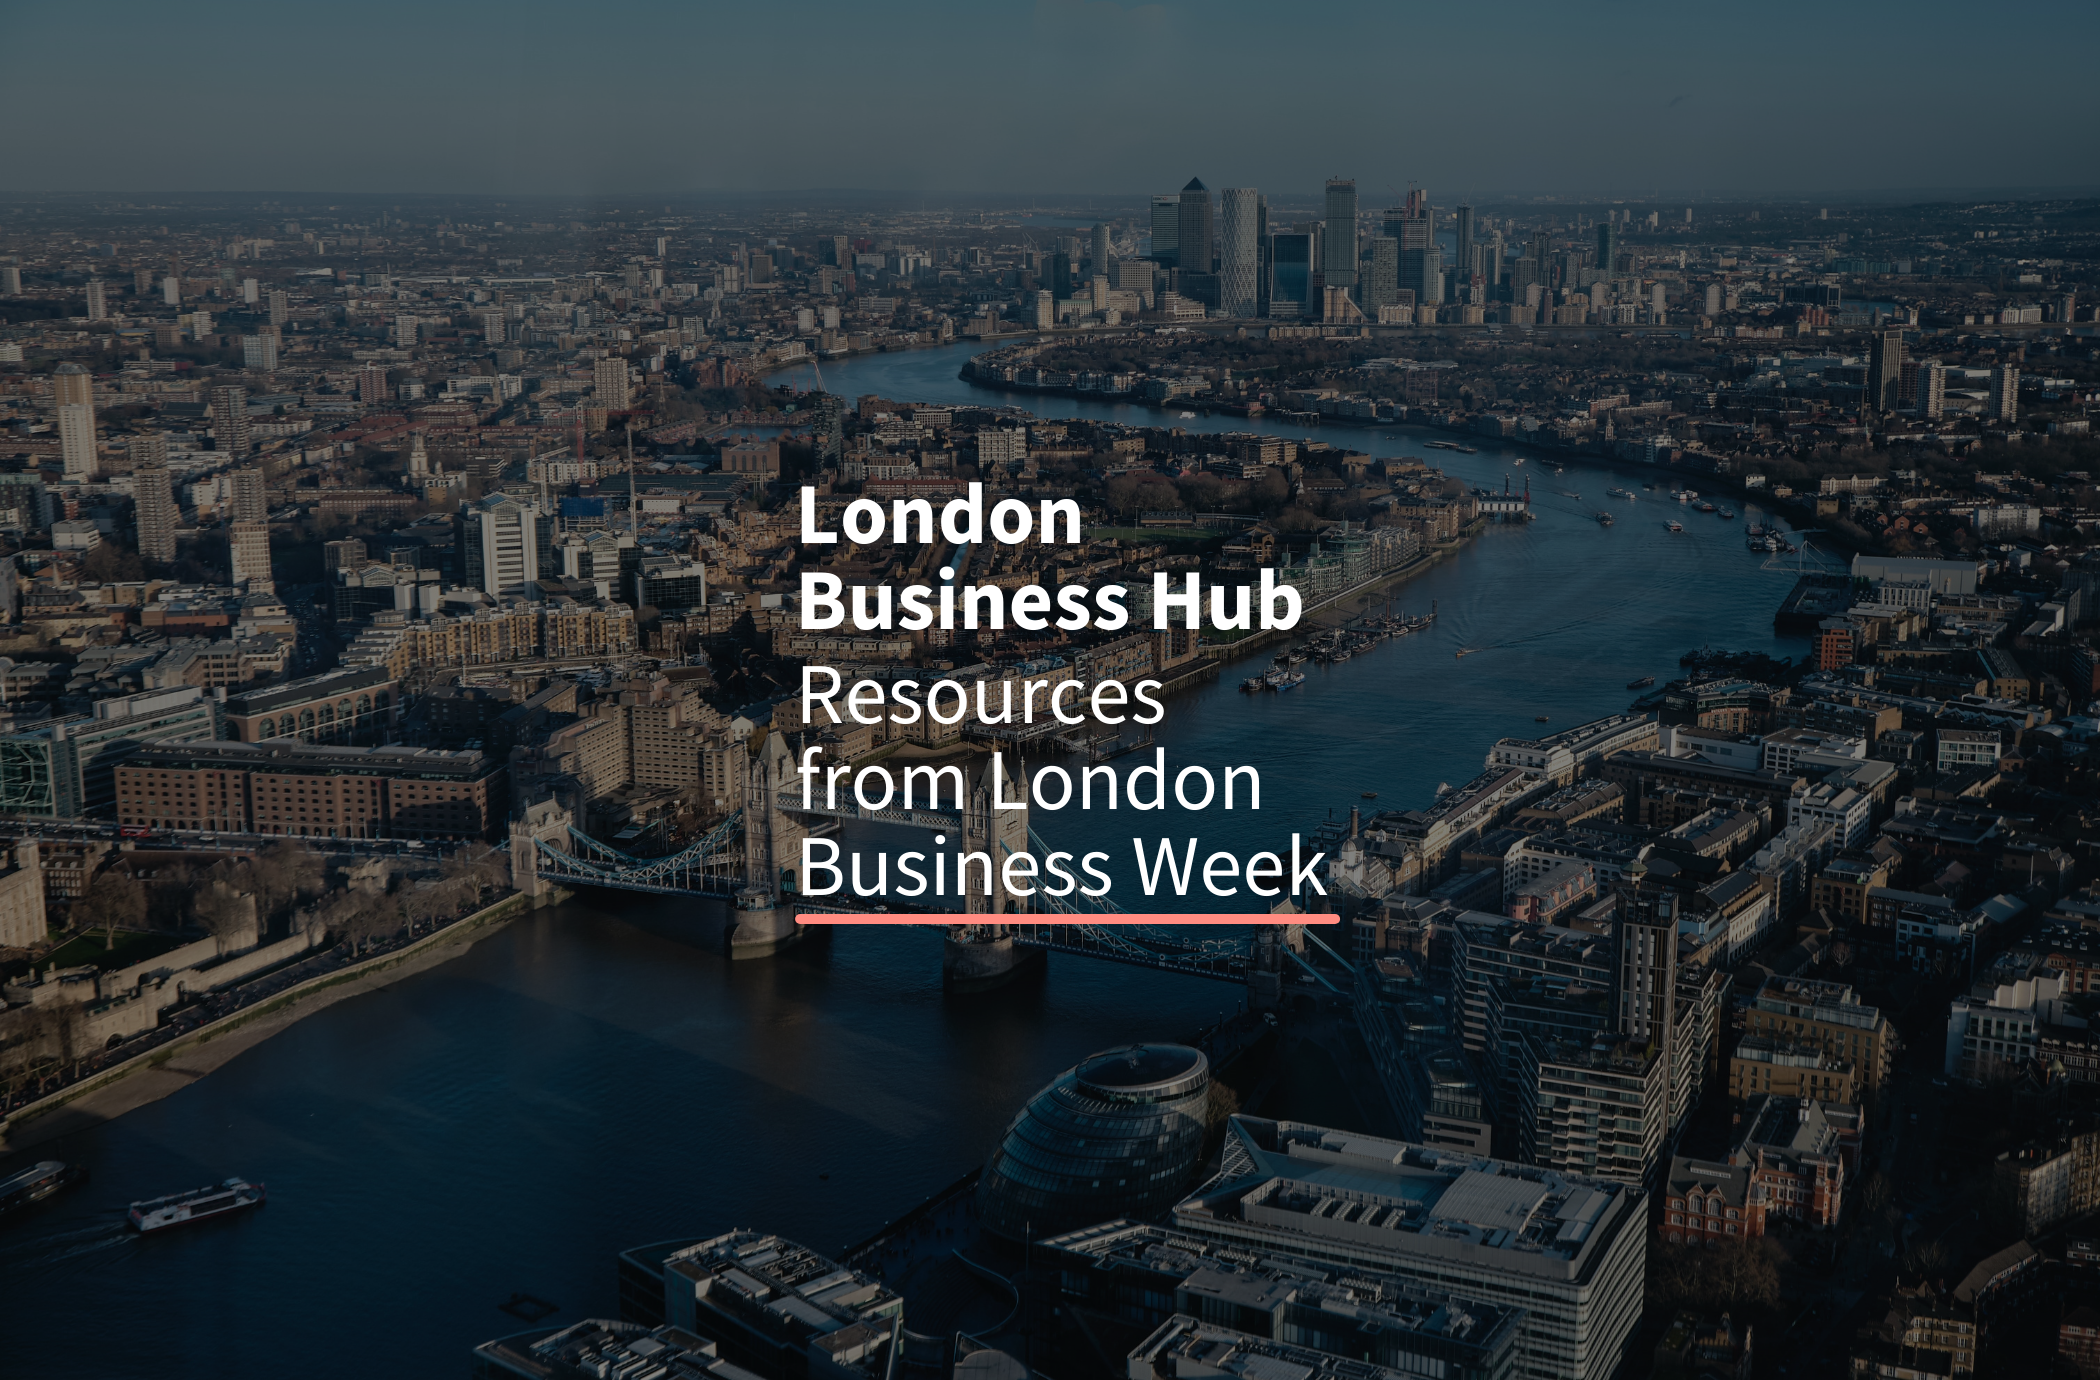 Resources from London Business Week